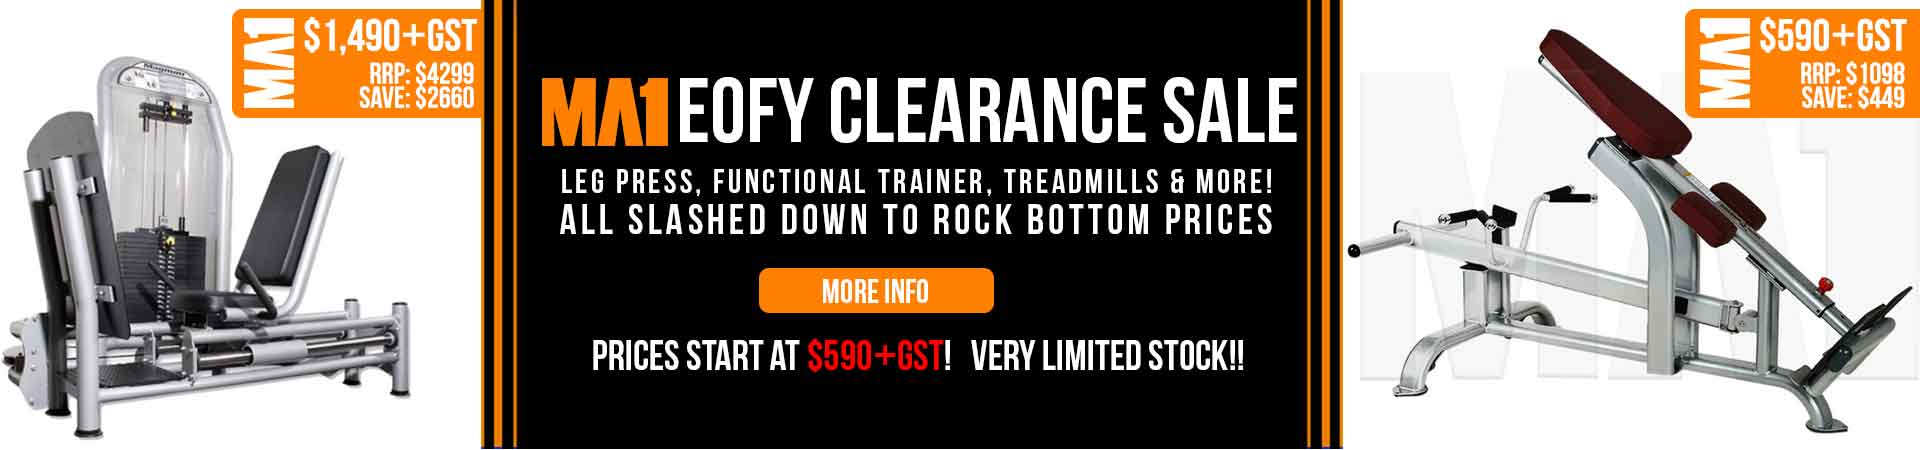 MA1 End of Financial Year Clearance Sale - Leg Press, Functional Trainer, Treadmills & More! Prices start from $590+gst!